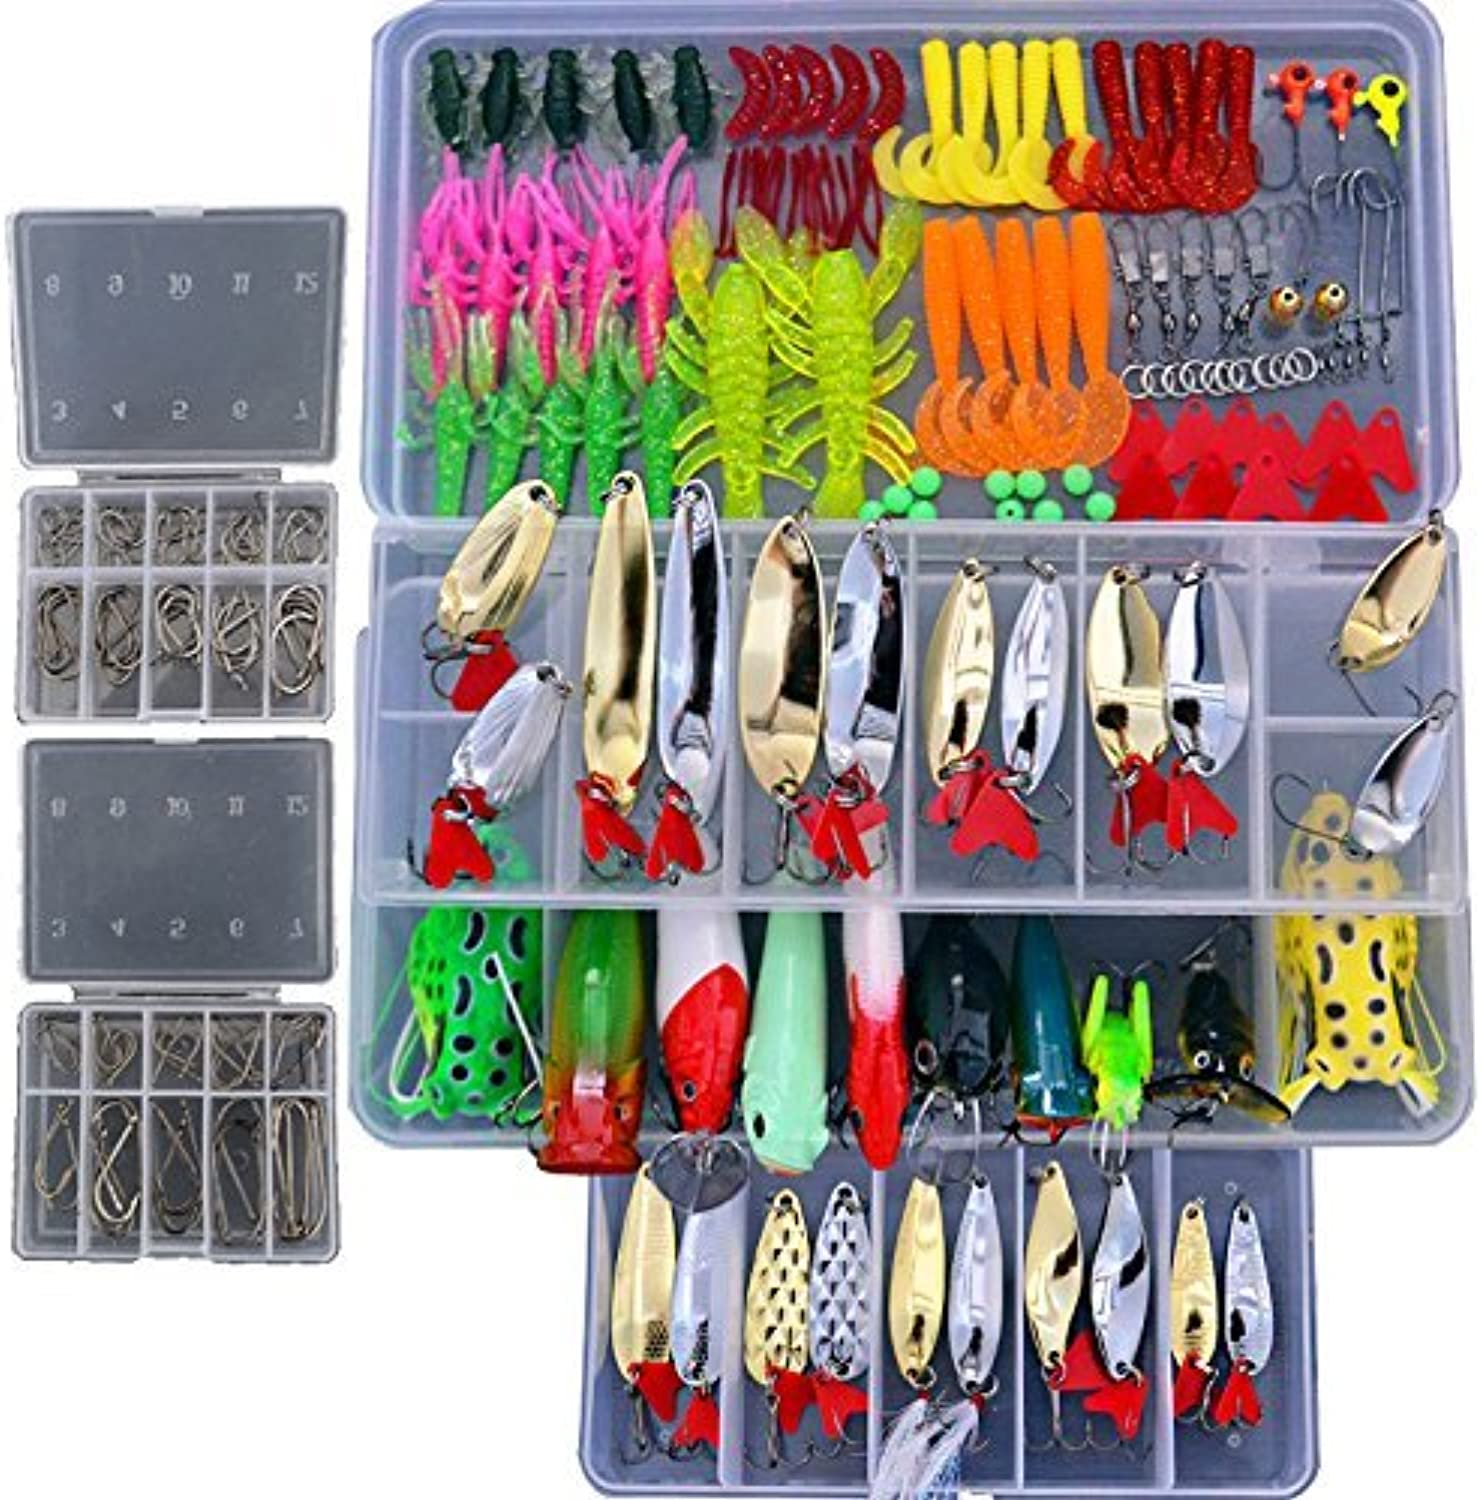 blueenet 226 Pcs Soft Plastic Fishing lures Tackle Kit Including Bionic Bass Trout Salmon Pike Fishing Lure Frog Lures Minnow Popper Pencil Crank Soft Hard Bait Fishing Lure Metal Spoon Jig Lure